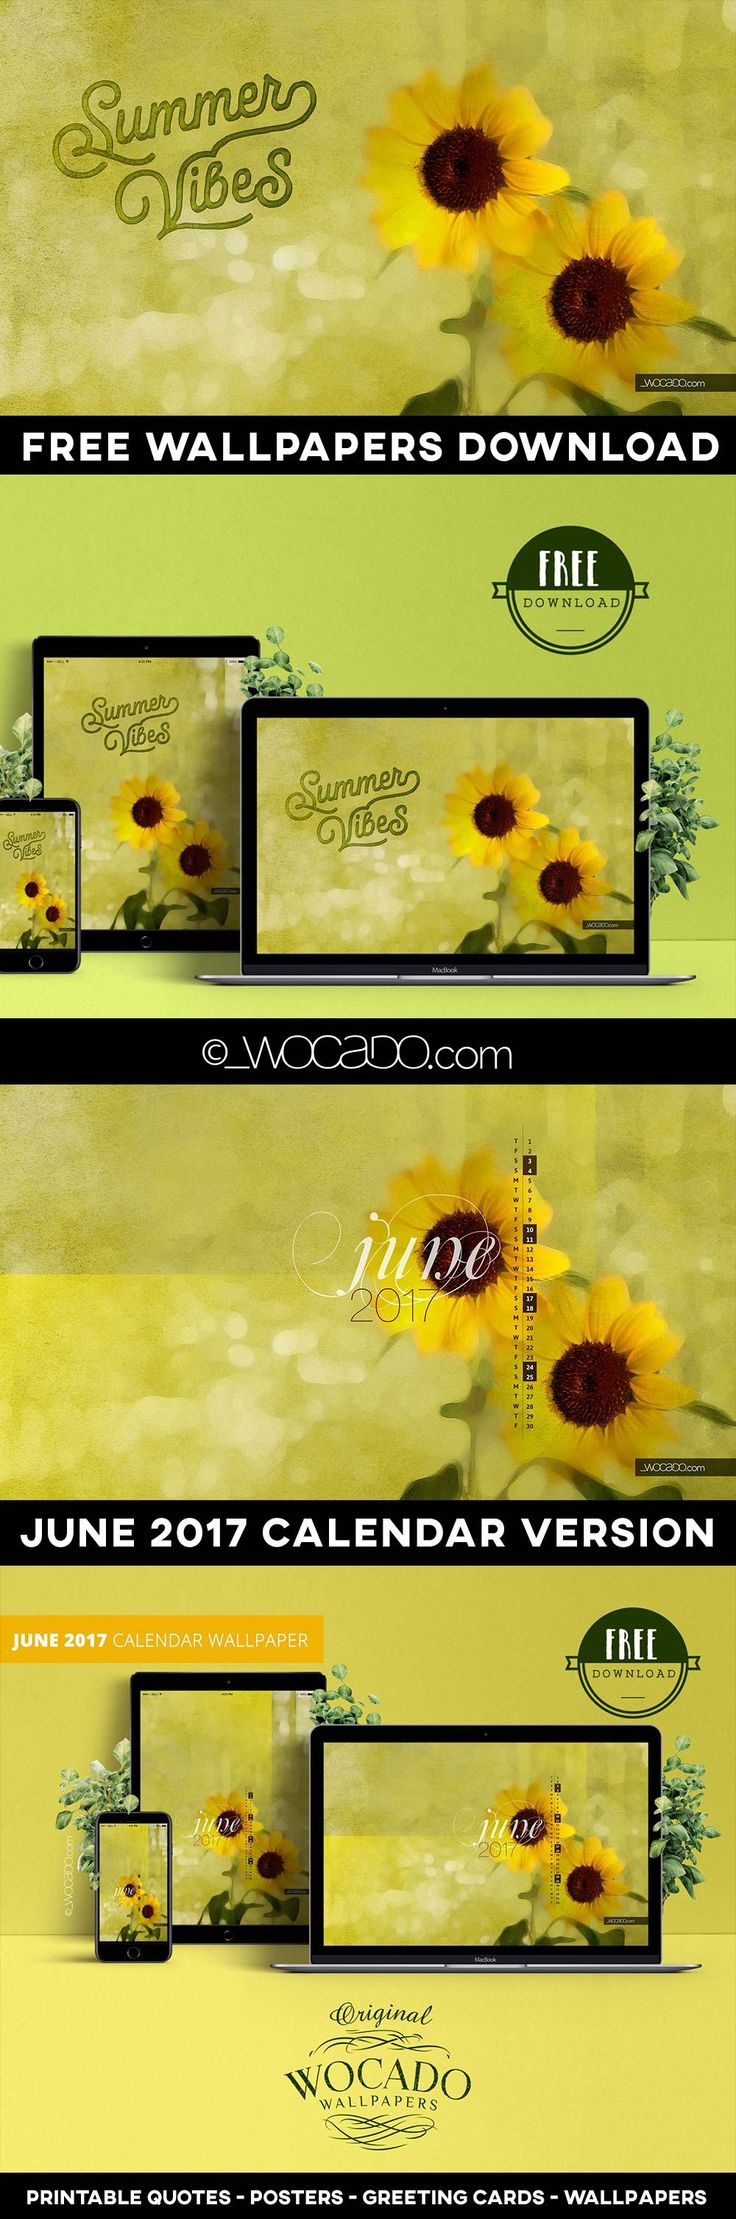 Free Download by WOCADO Available in various resolutions. Get This Beautiful 2017 June Calendar WallPaper for your Device. Get it now There is also an All-Year Wallpaper Version without Calendar with beautiful 'Summer Vibes' lettering. Get it now Do You Like These Wallpapers? Let Me Know Your Thoughts in the Comments Below! Do You Have a Story to…